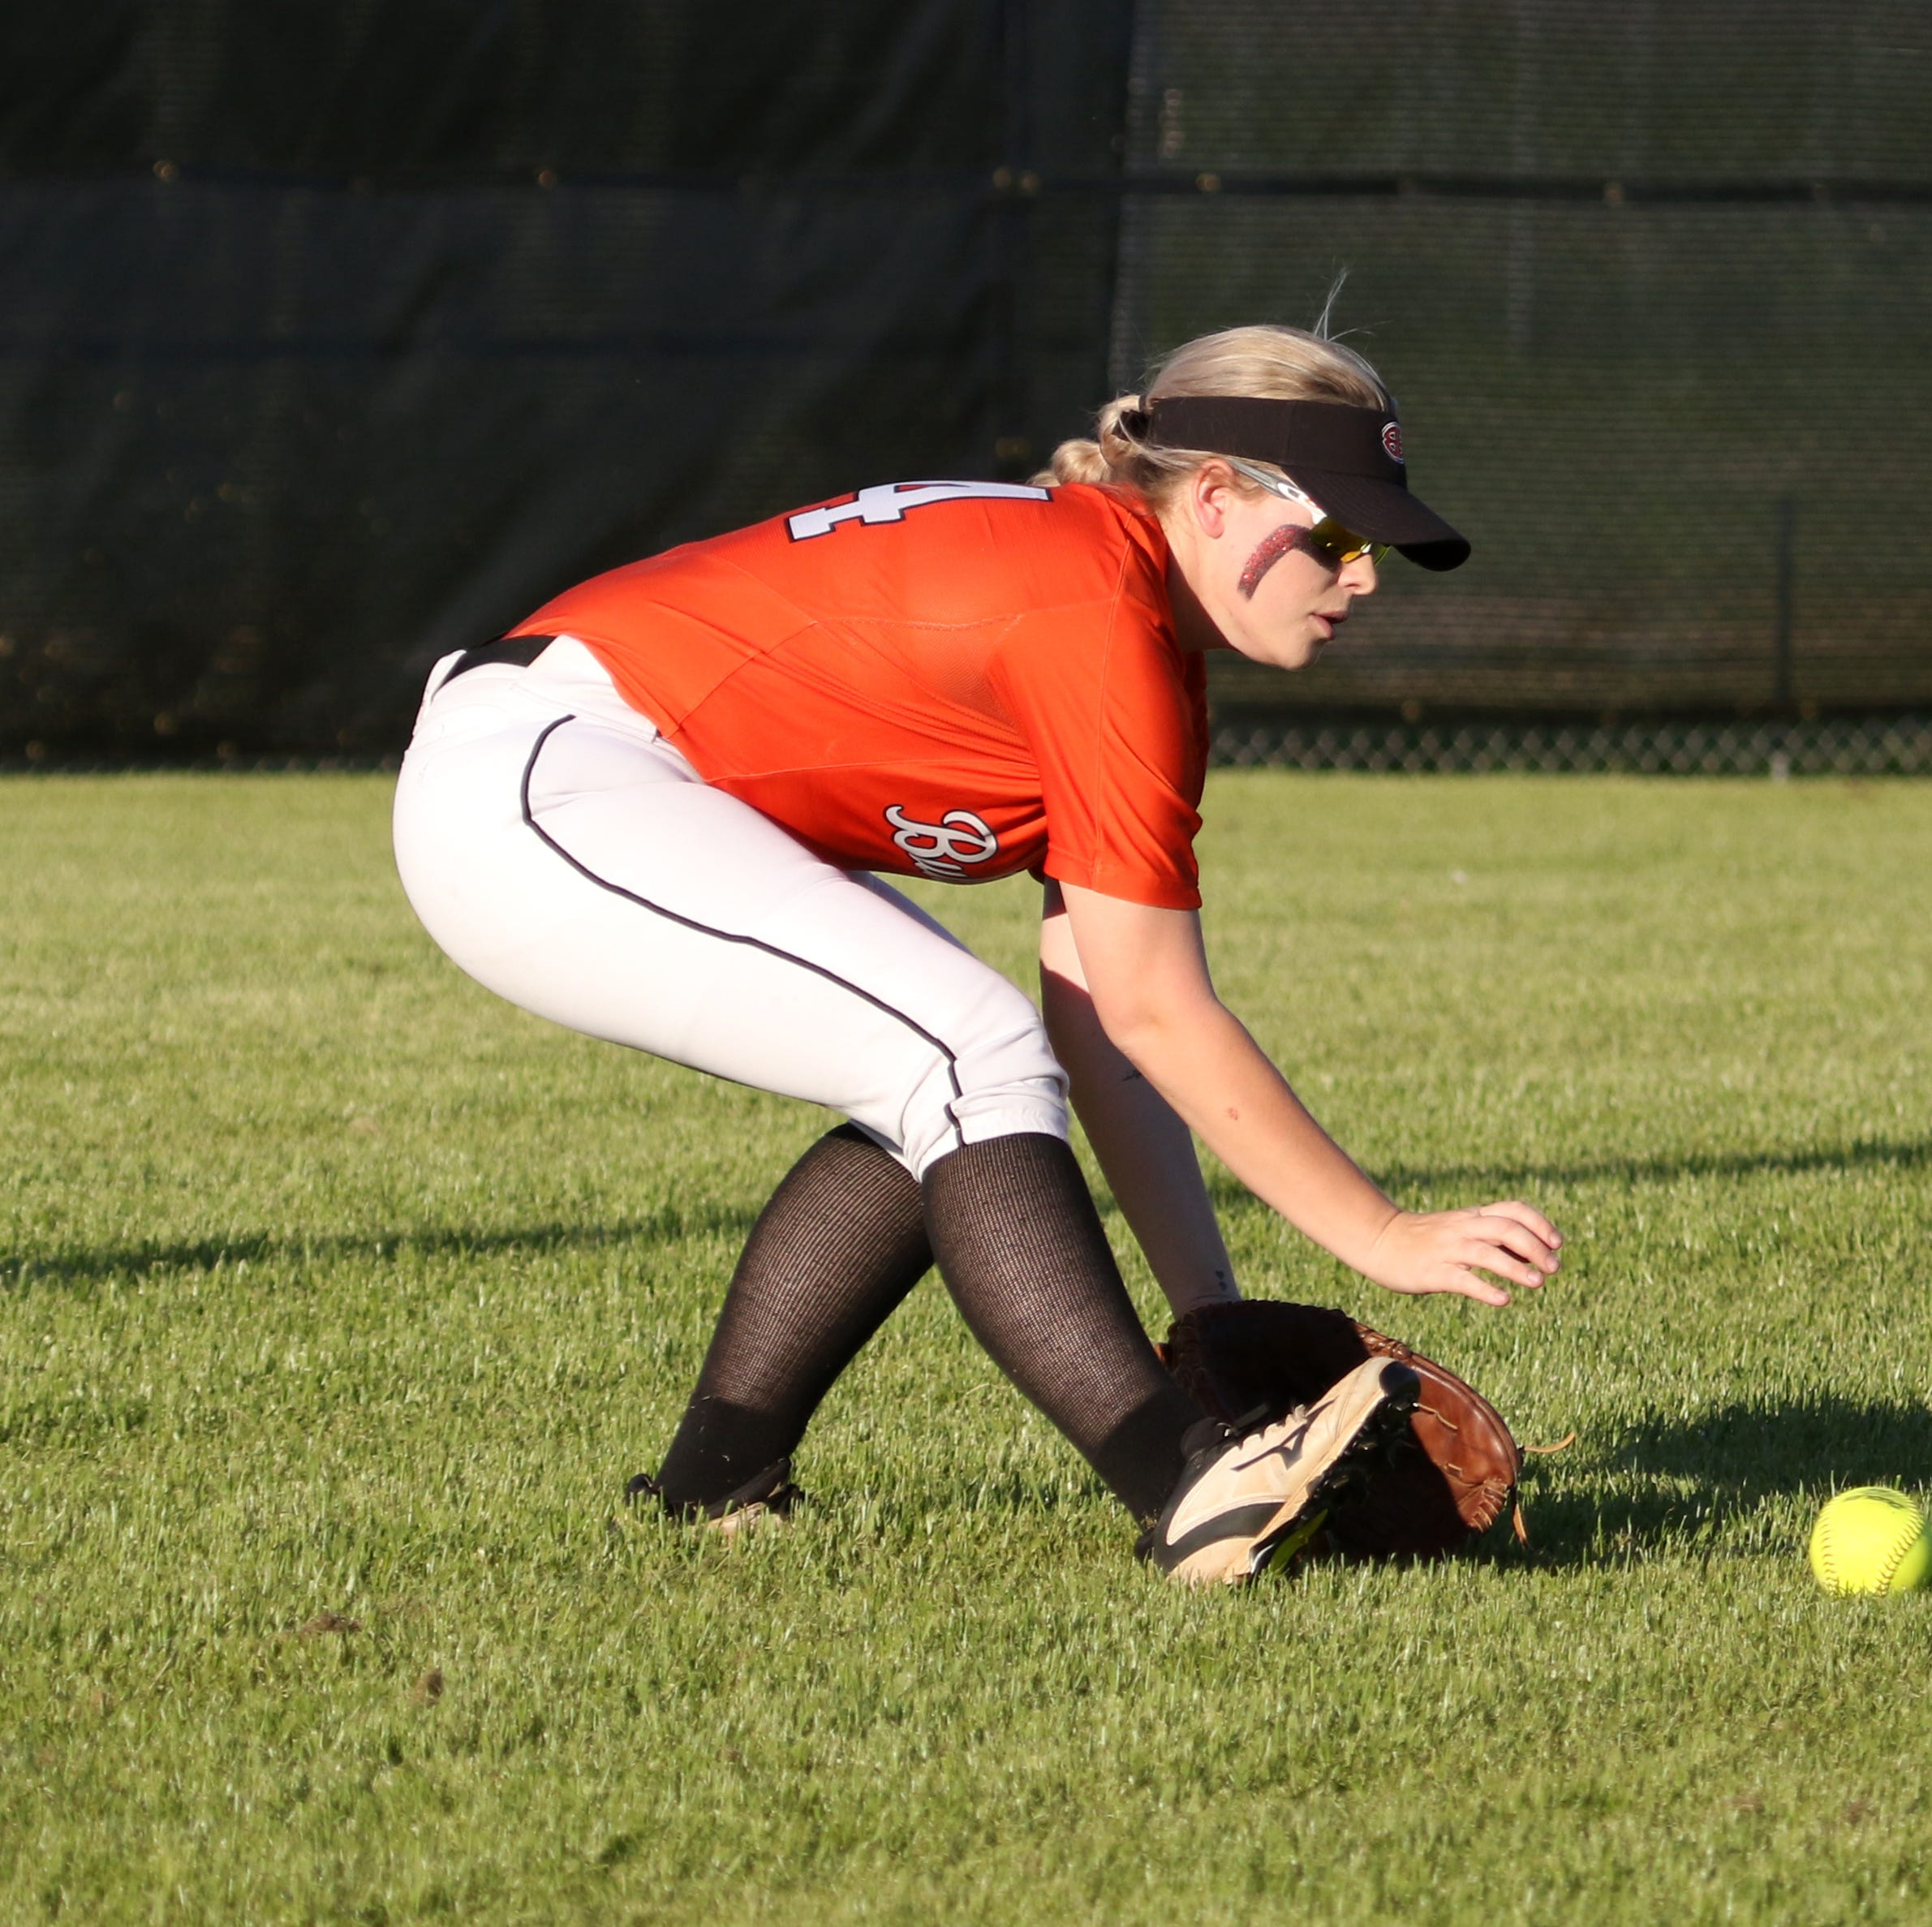 Softball: Burkburnett advances to next round; Henrietta takes opener